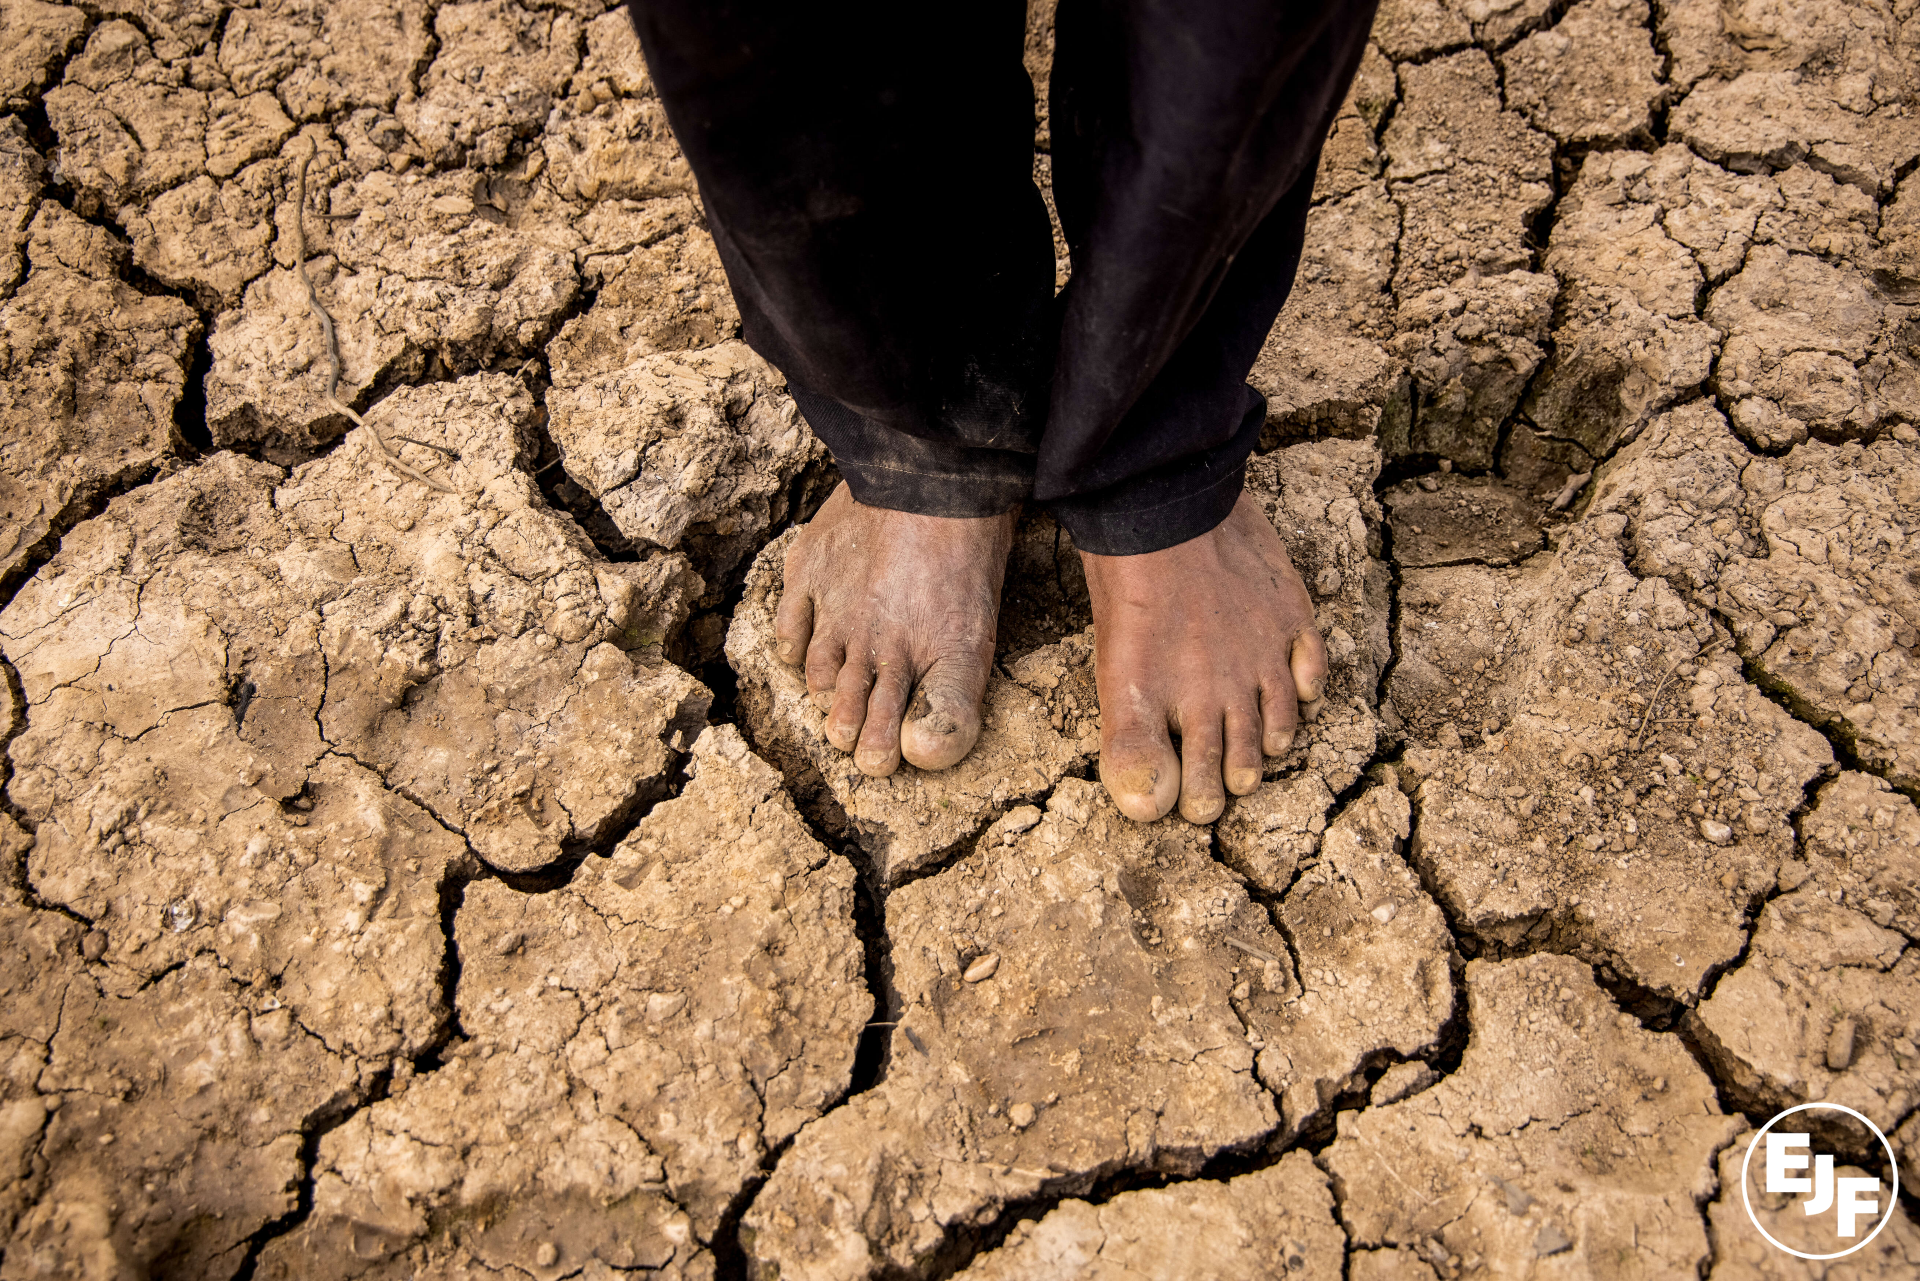 No more delays: EJF comment on IPCC Sixth Assessment Report